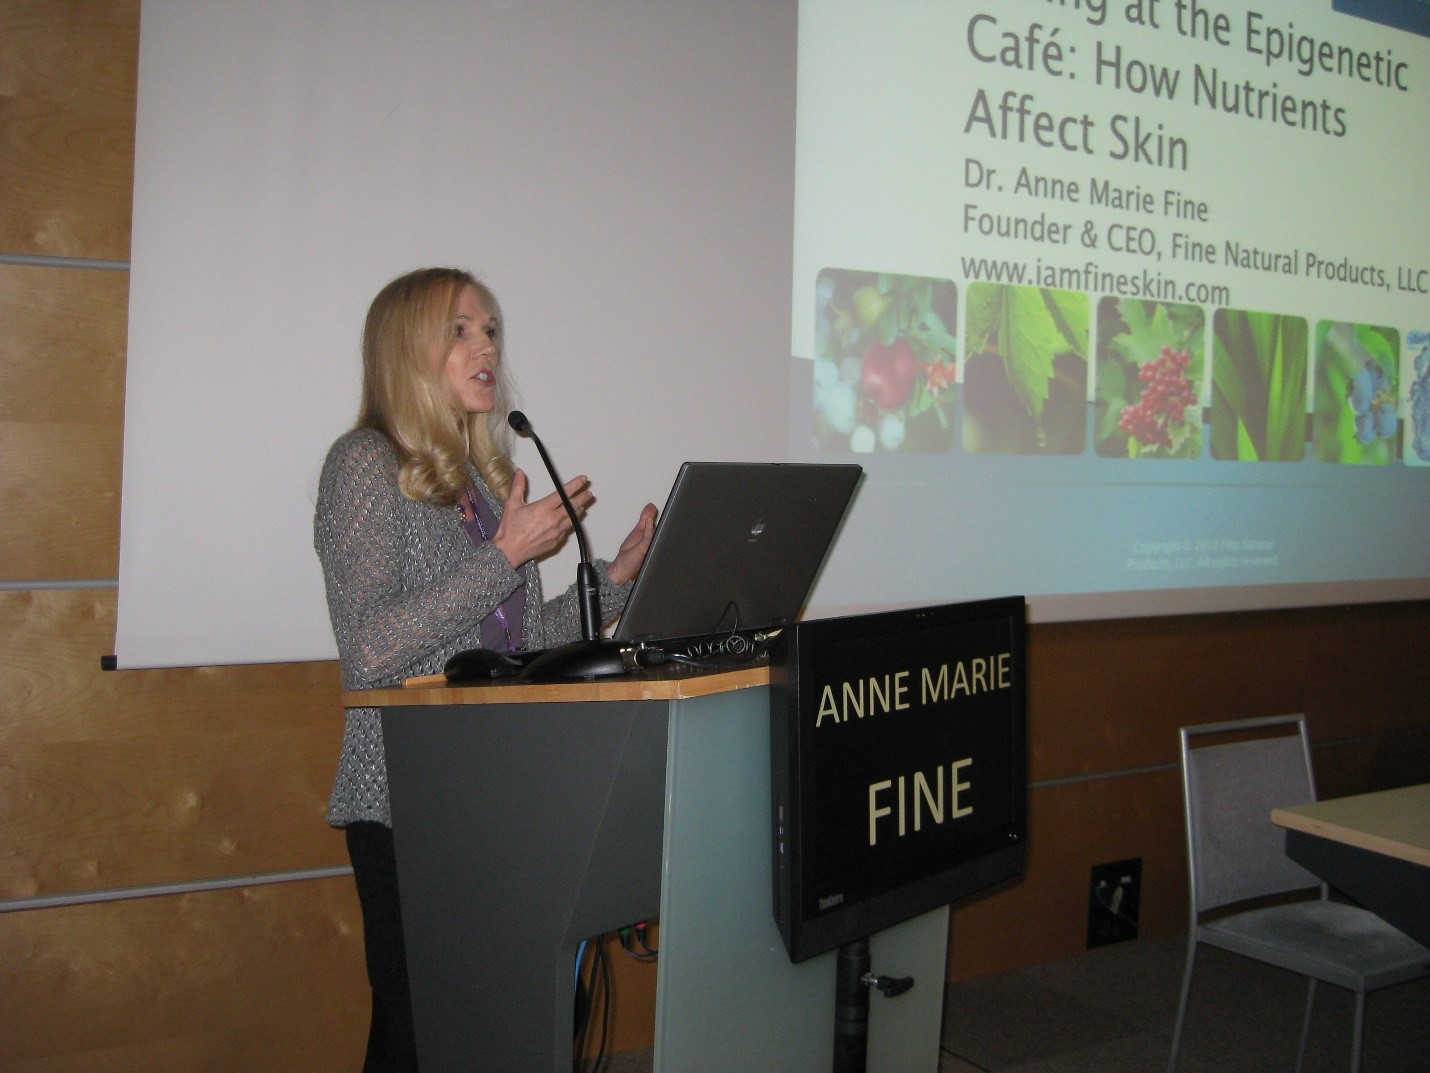 Dr. Anne Marie Fine naturopathic doctor speaking engagements